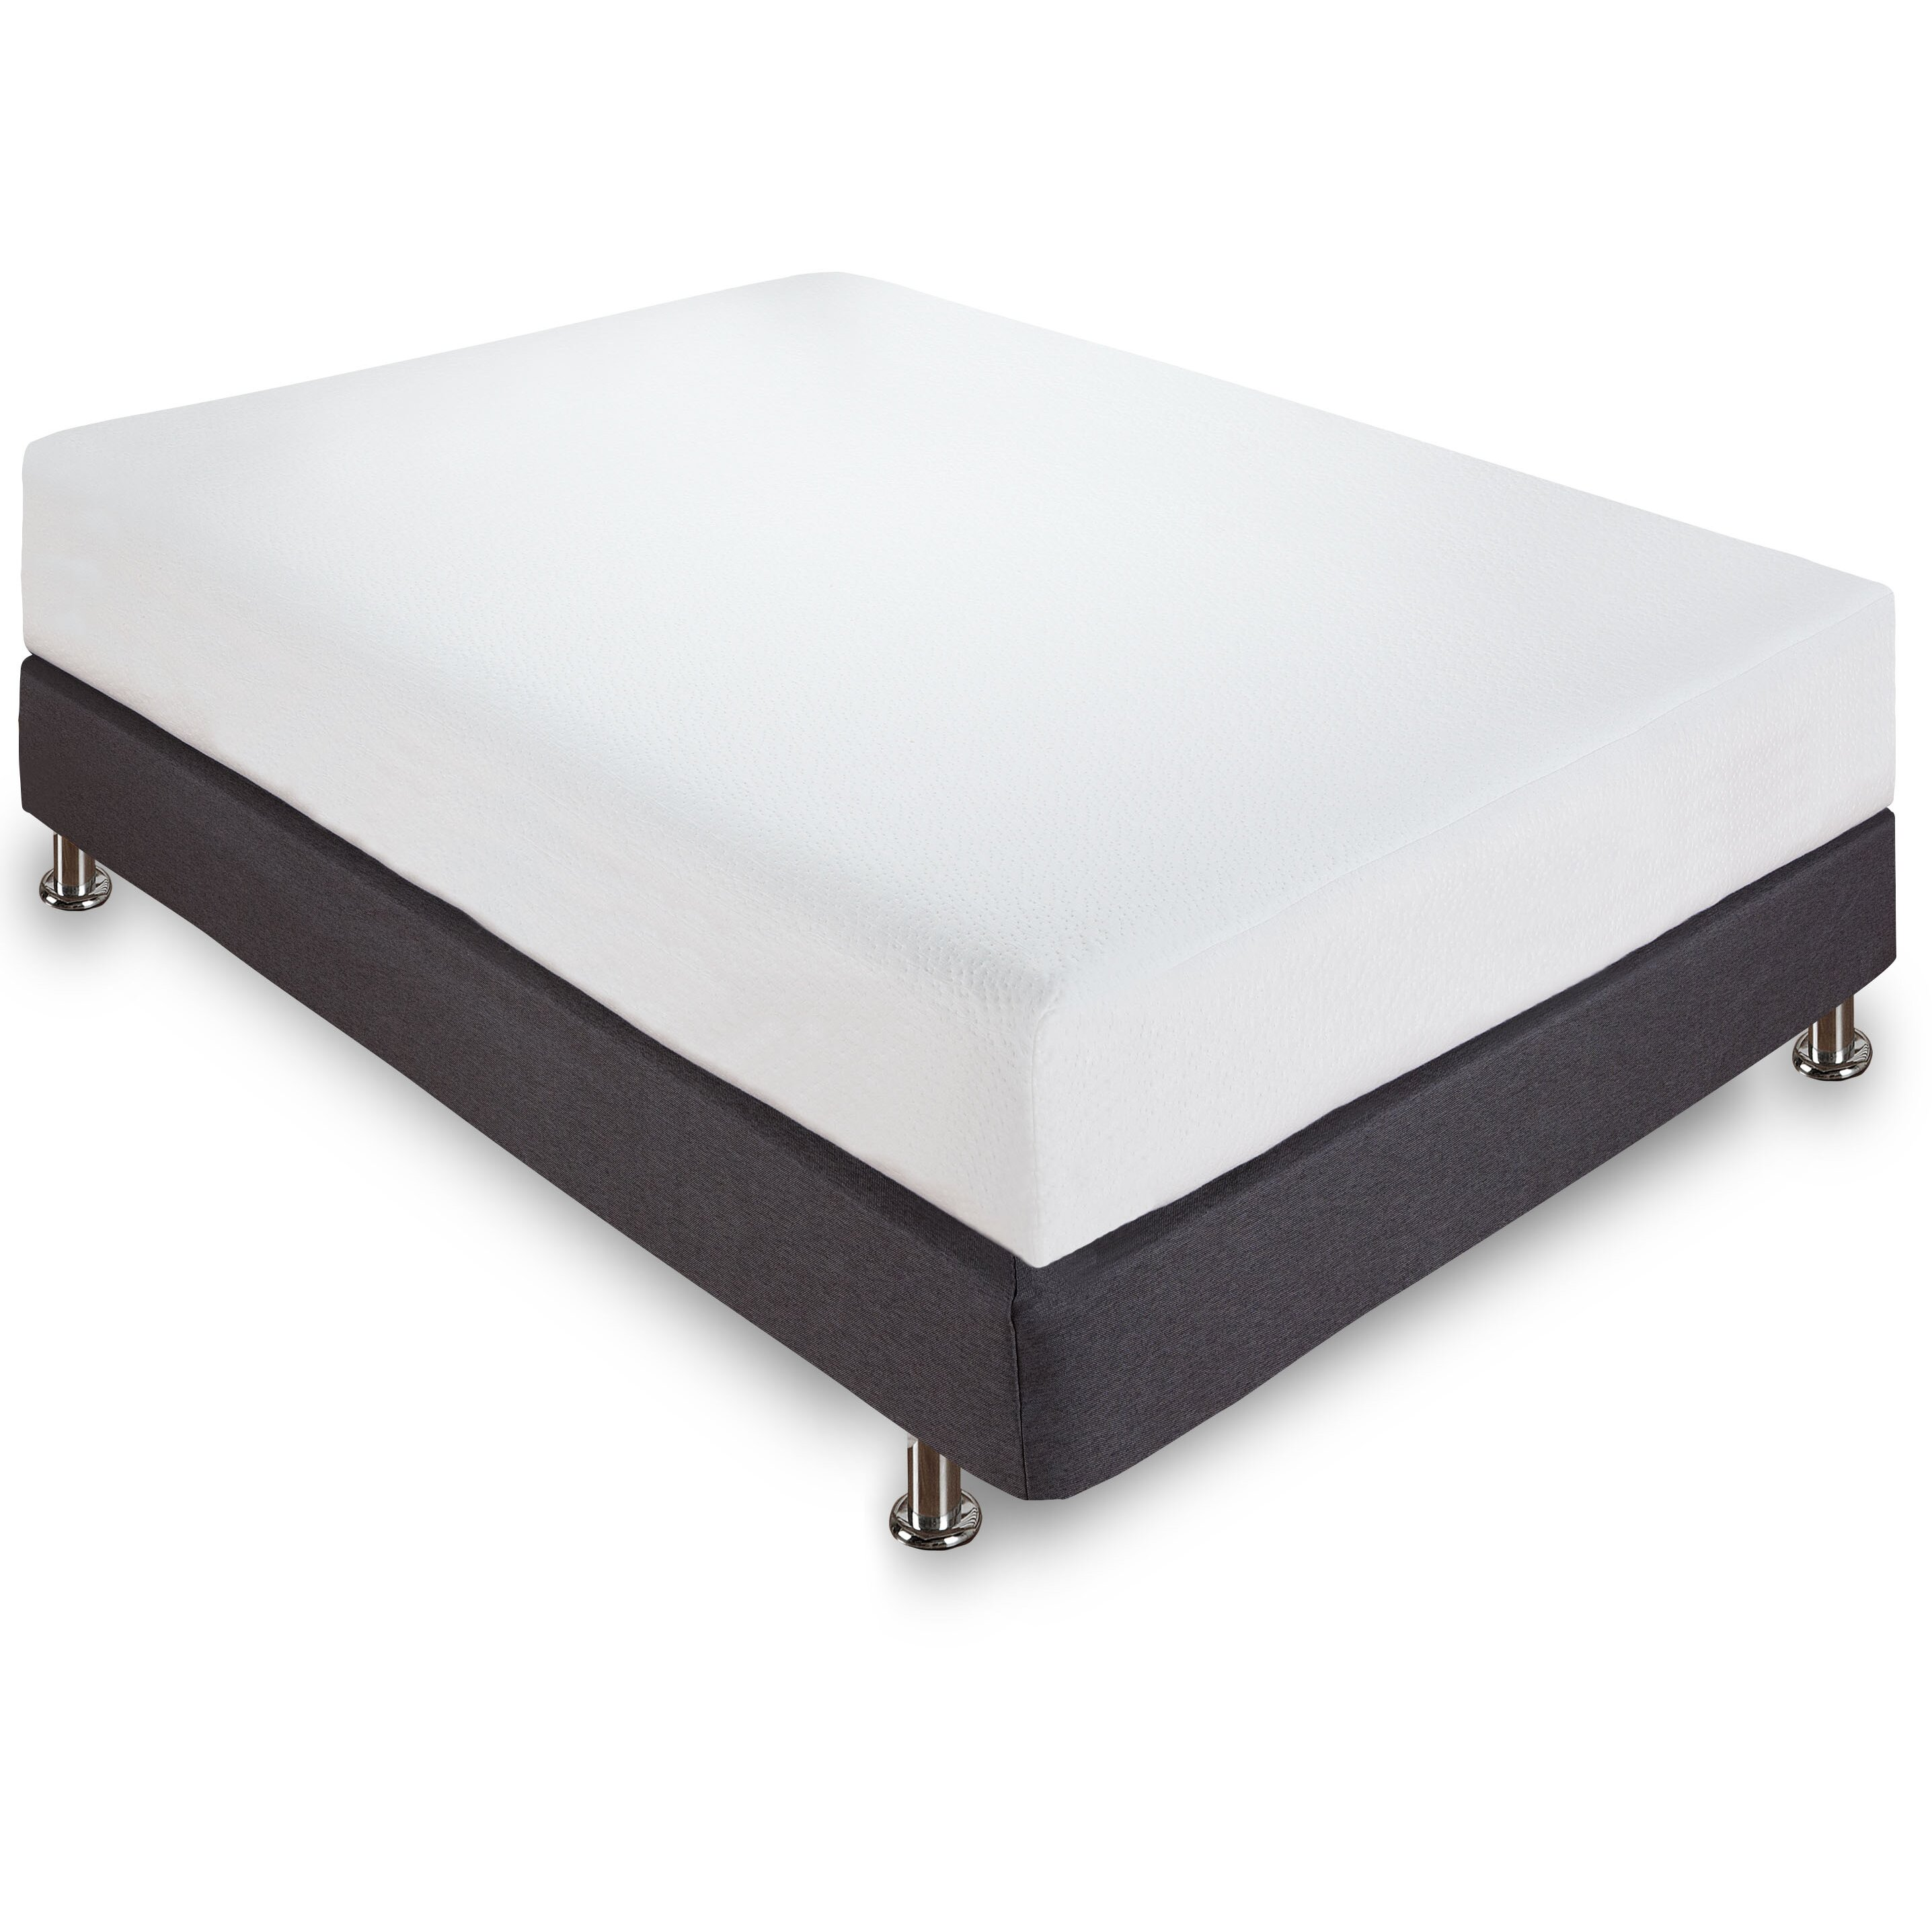 "Classic Brands 8"" Memory Foam Mattress & Reviews"